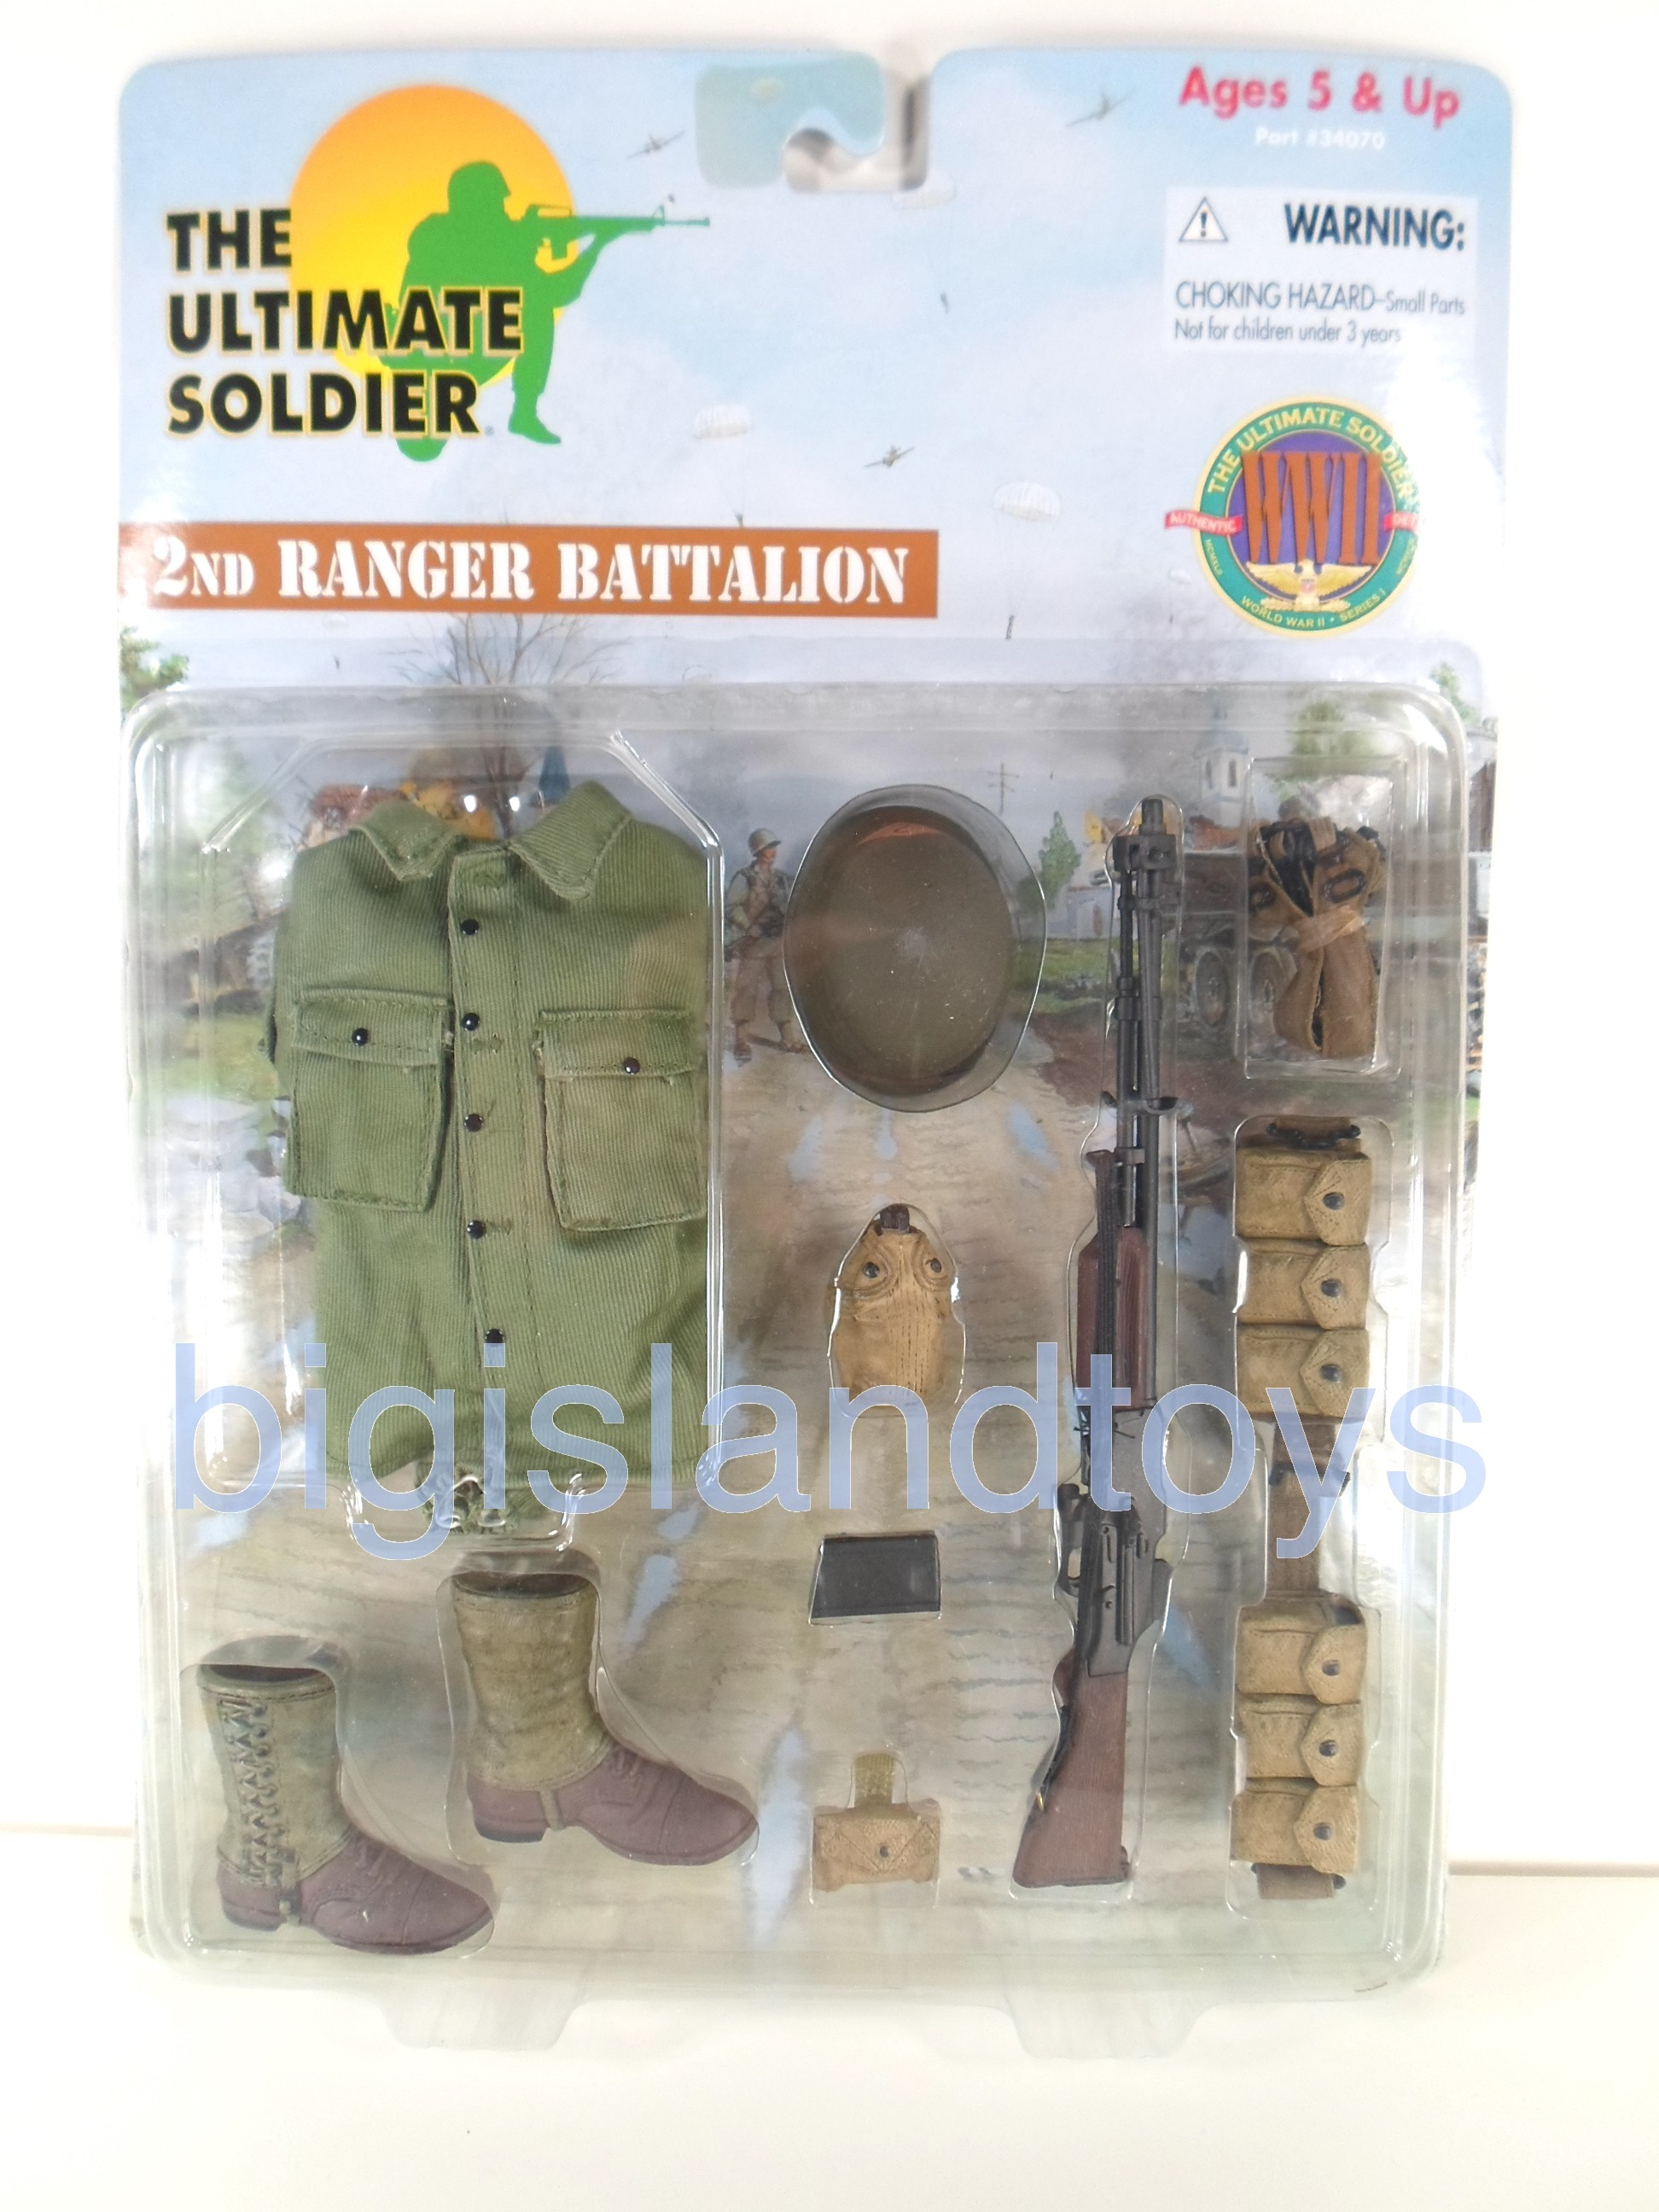 The Ultimate Soldier     2nd Ranger Battallion